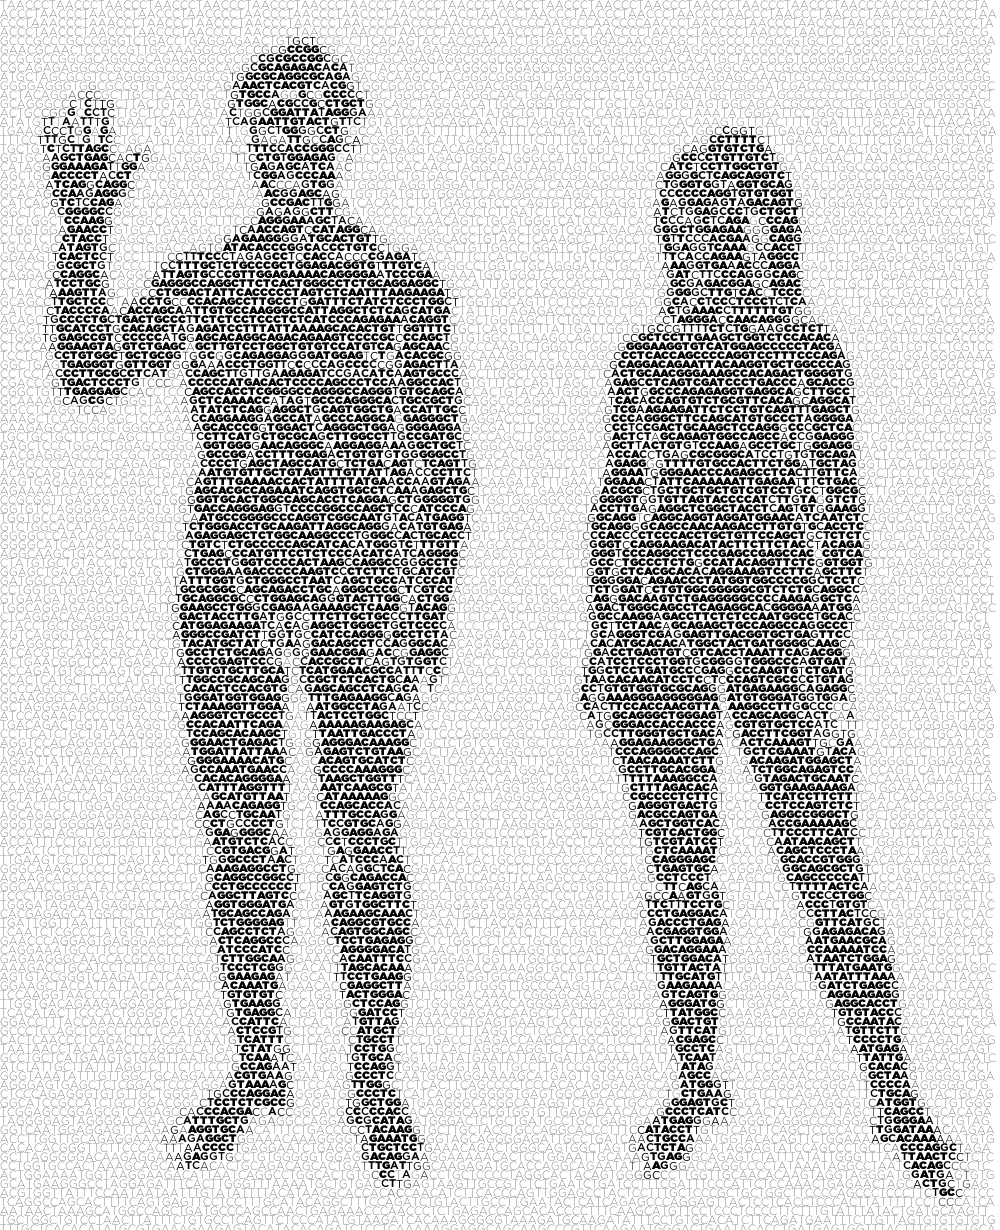 Human figures as a data collective. ASCII artwork source: Chris.com